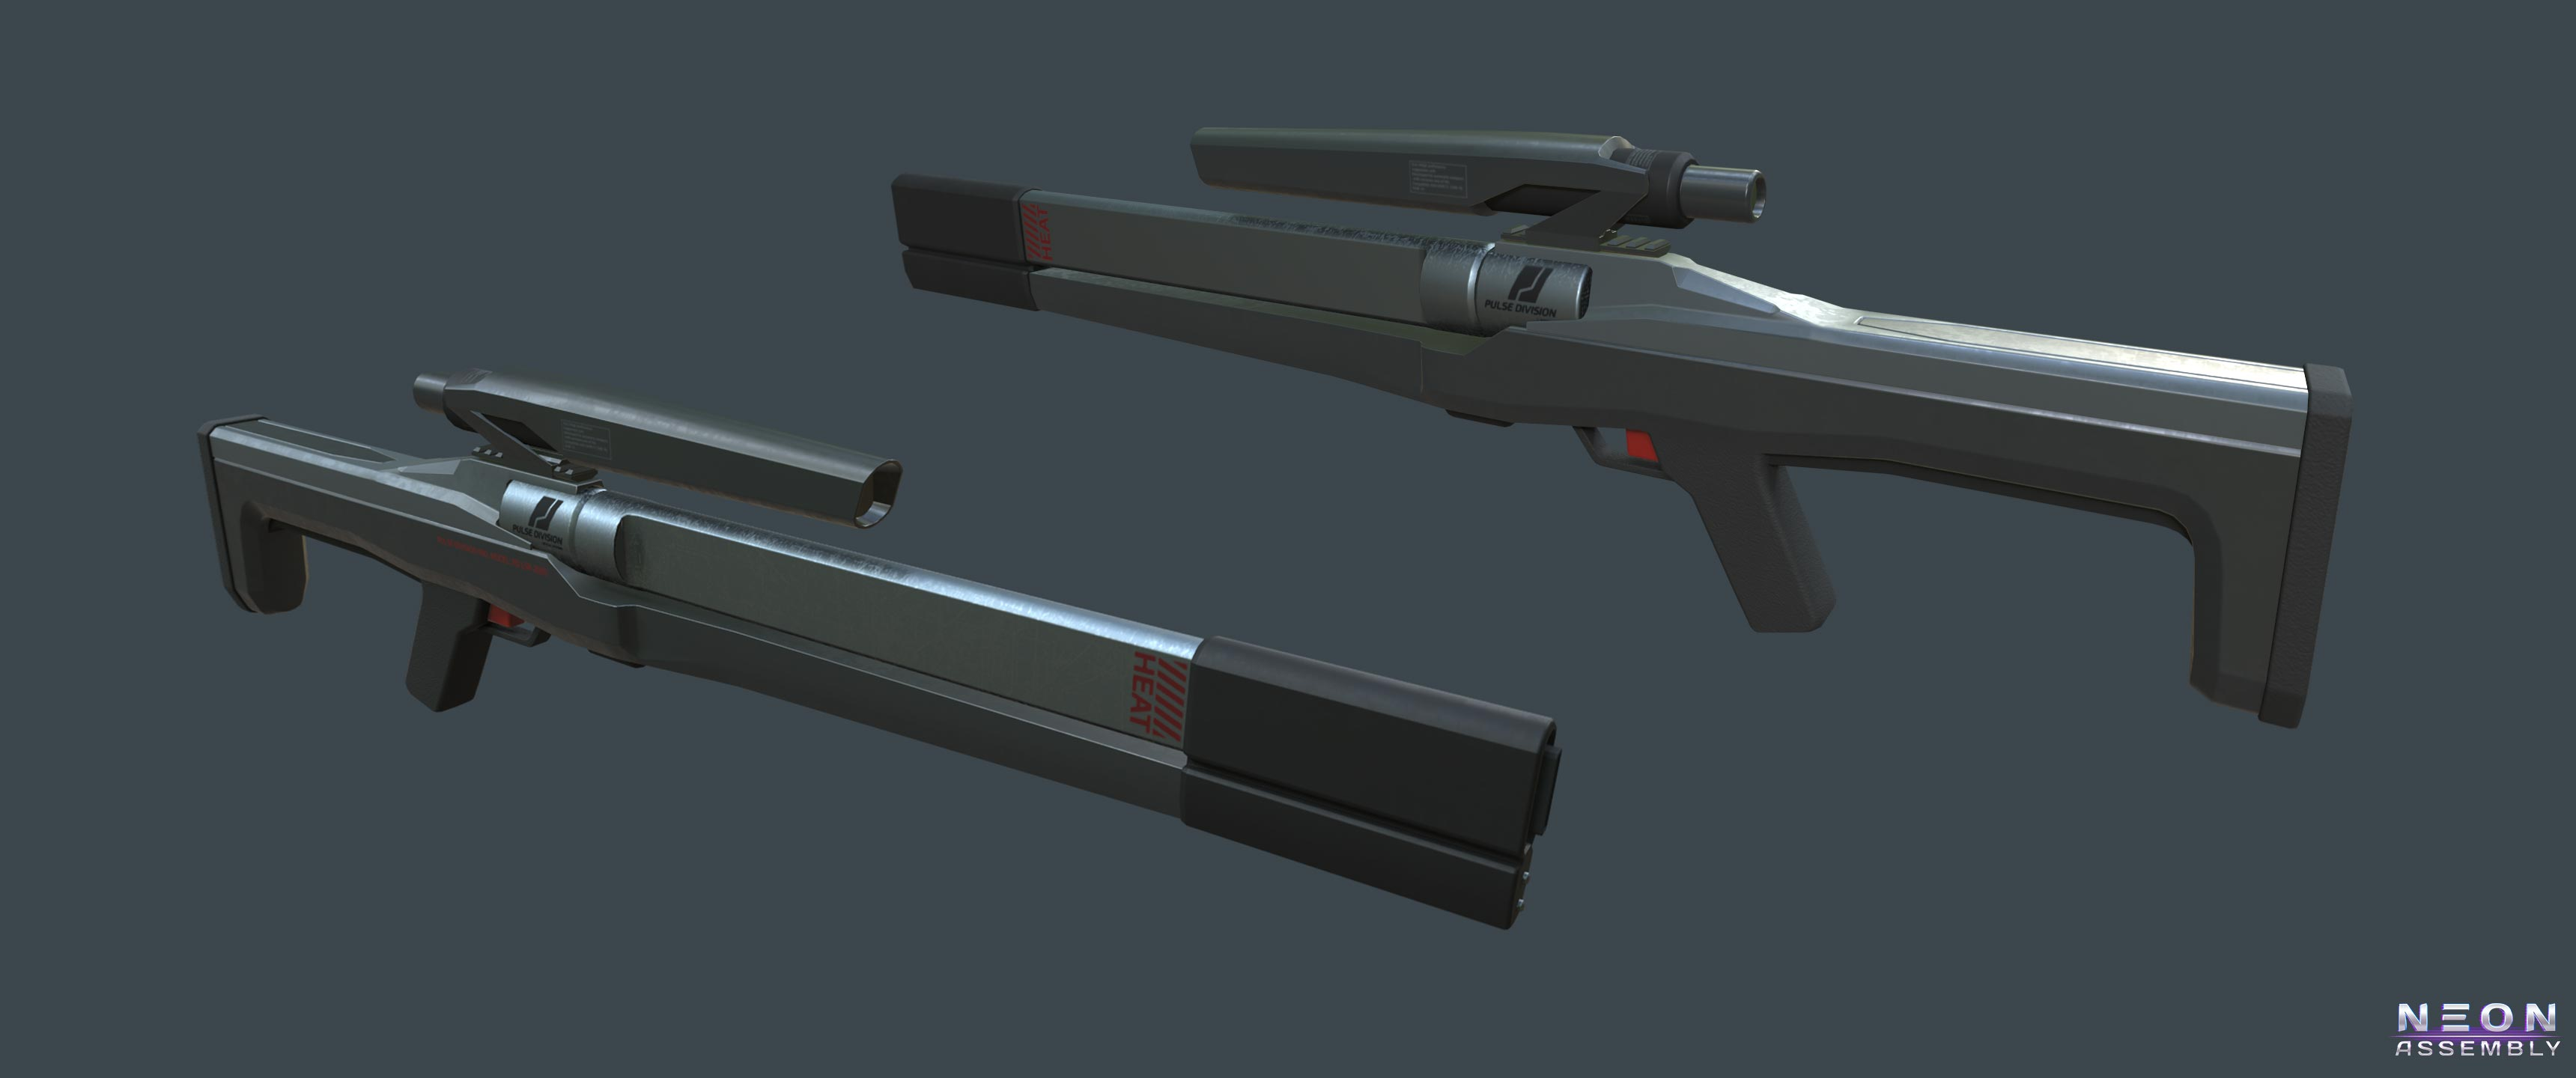 NA Laser sniper rifle. | NEON ASSEMBLY. A competetive multiplayer turn based tactics game.